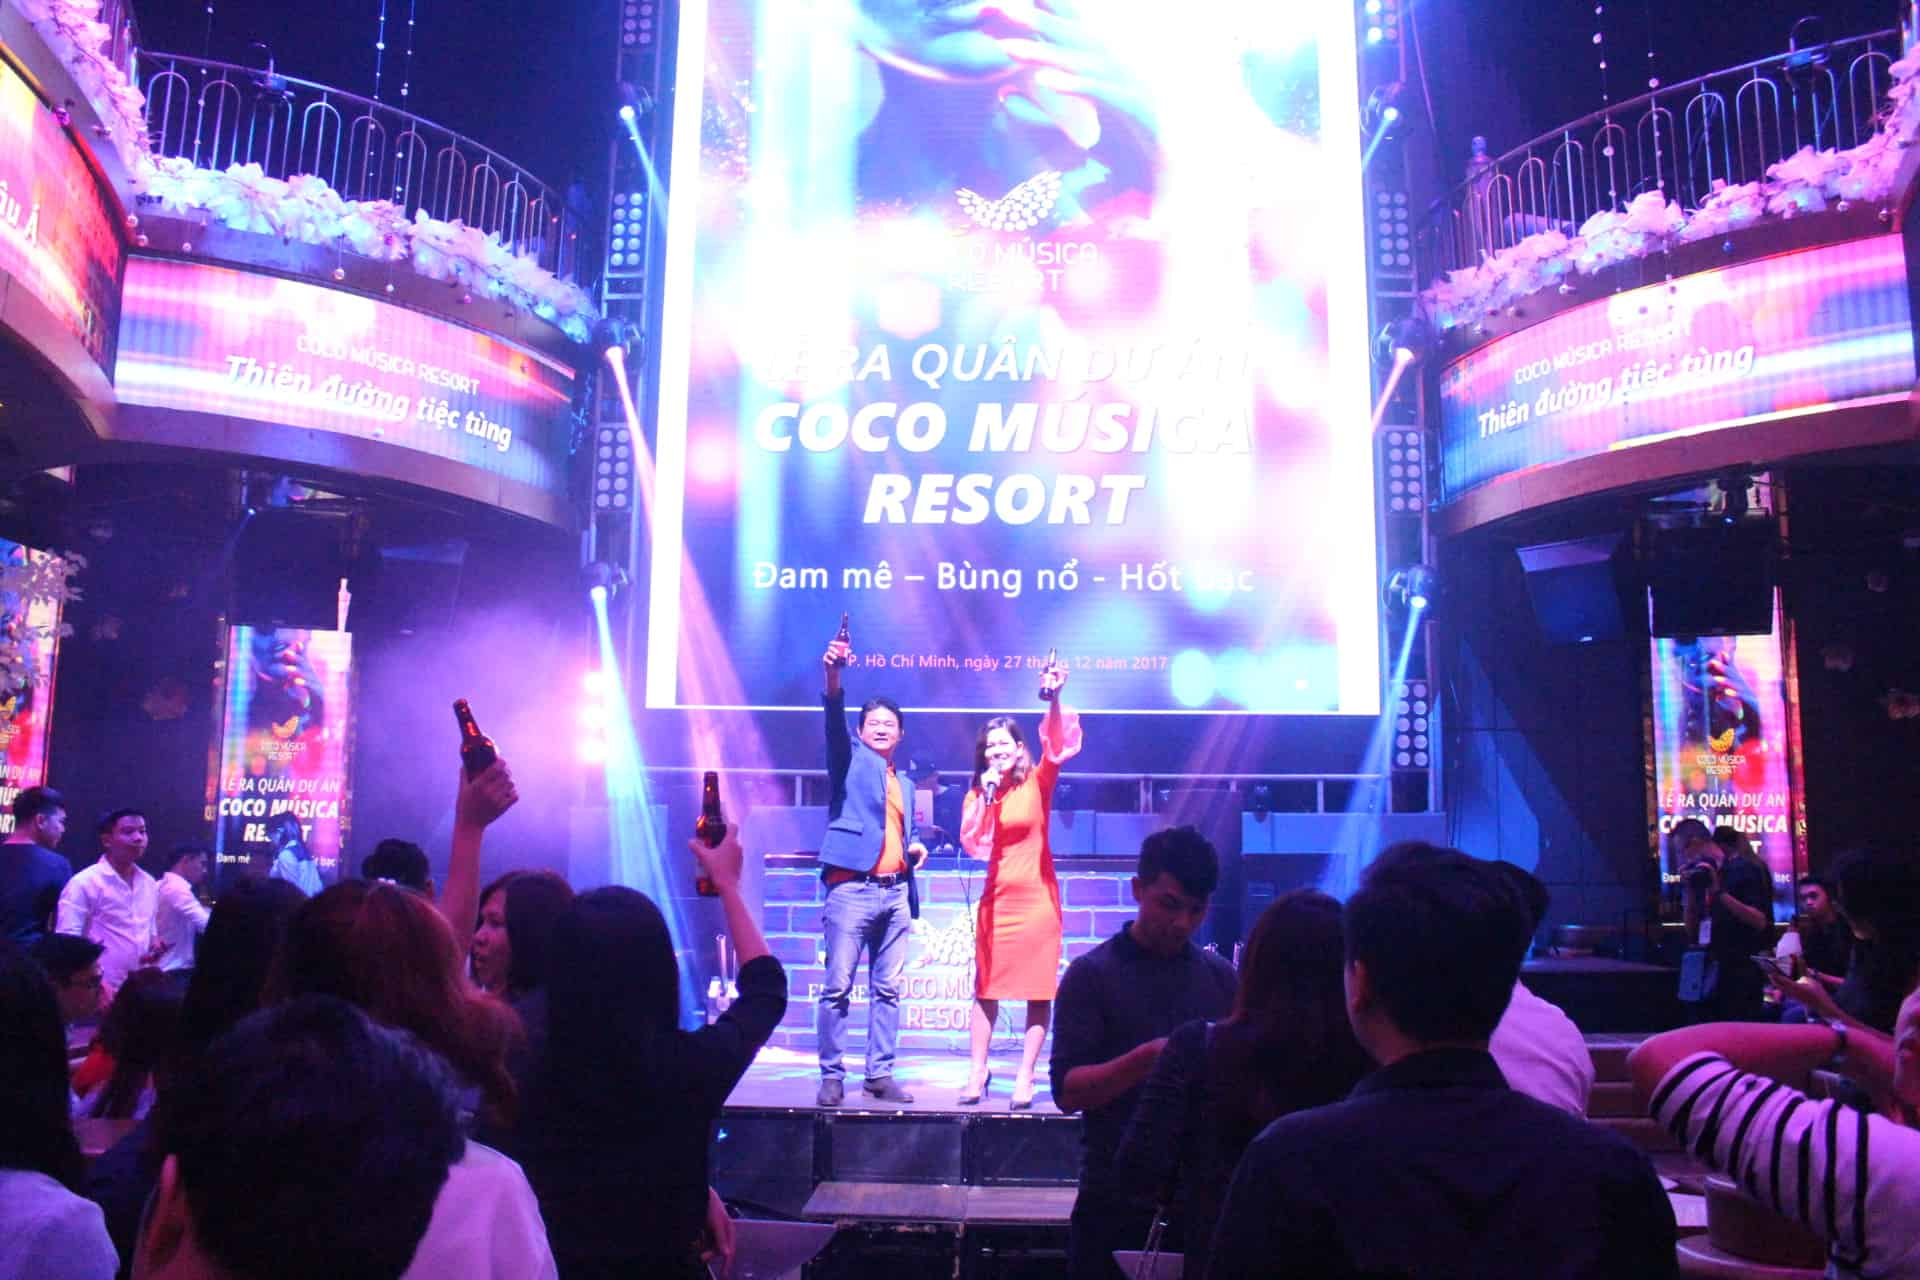 smartrealtors and partners tham gia le ra mat du an coco musica resort quay that sung – bung suc ban – don tet ung dung 4